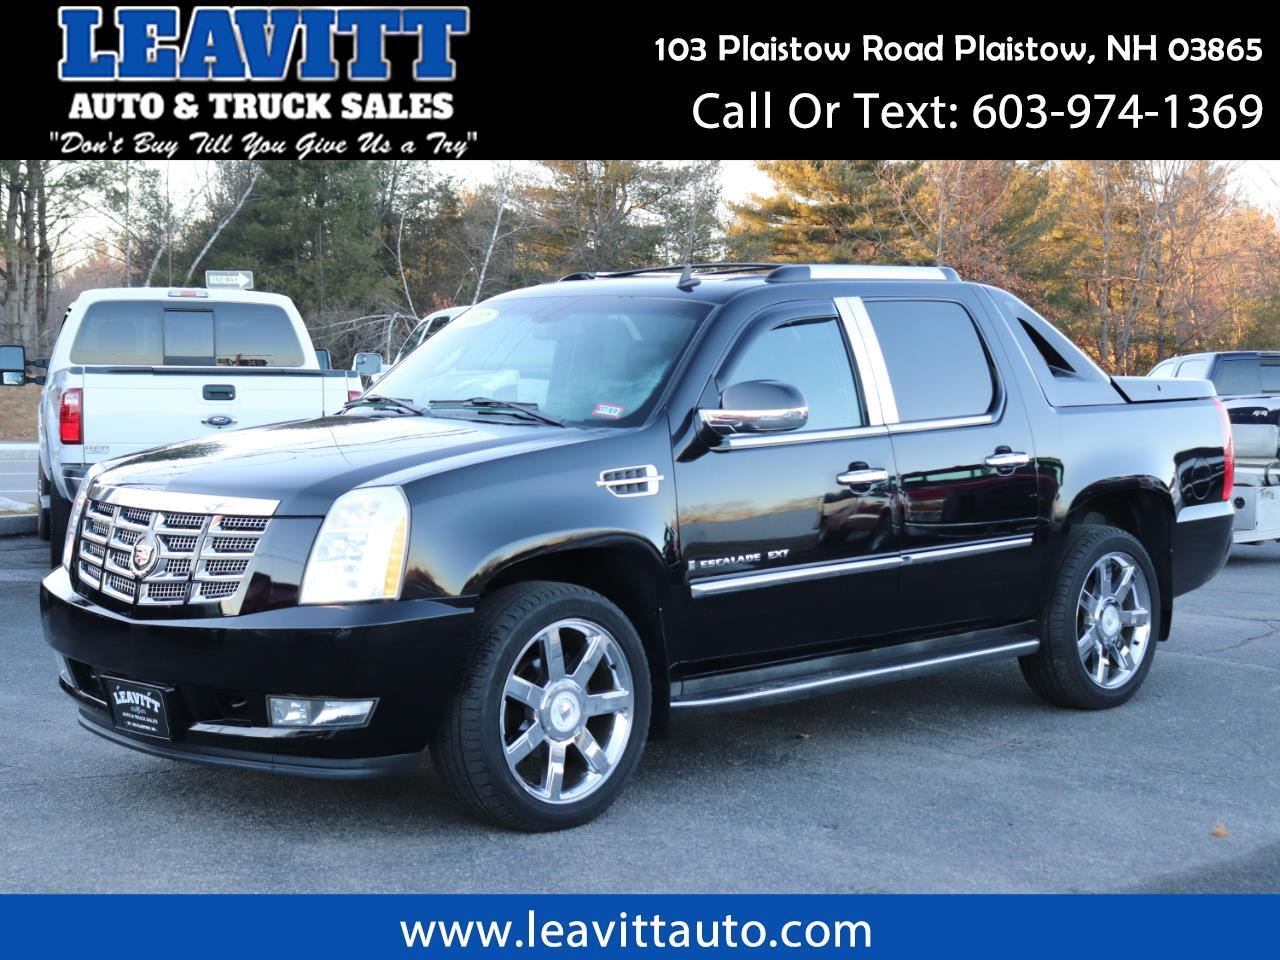 2007 Cadillac Escalade EXT BLACK ON BLACK LOADED